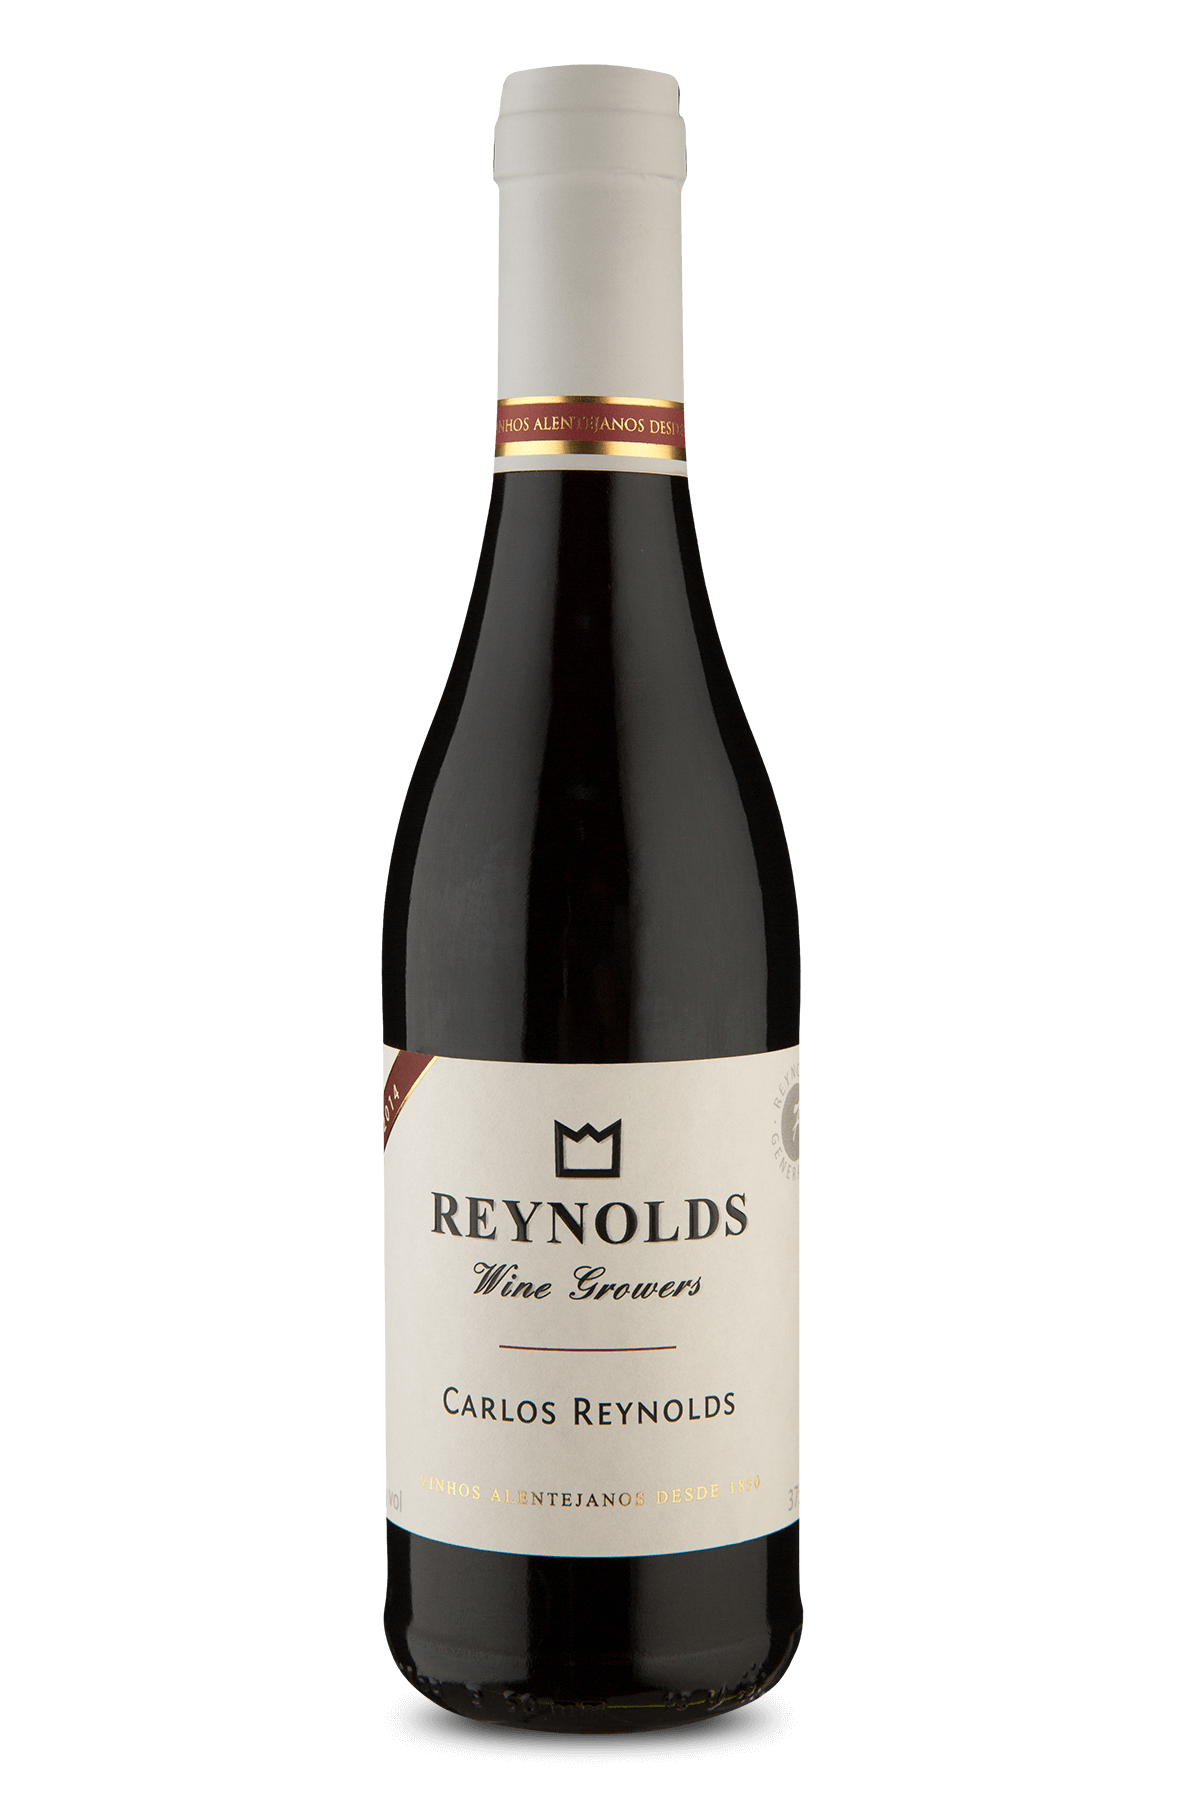 Carlos Reynolds 2014 375 ml